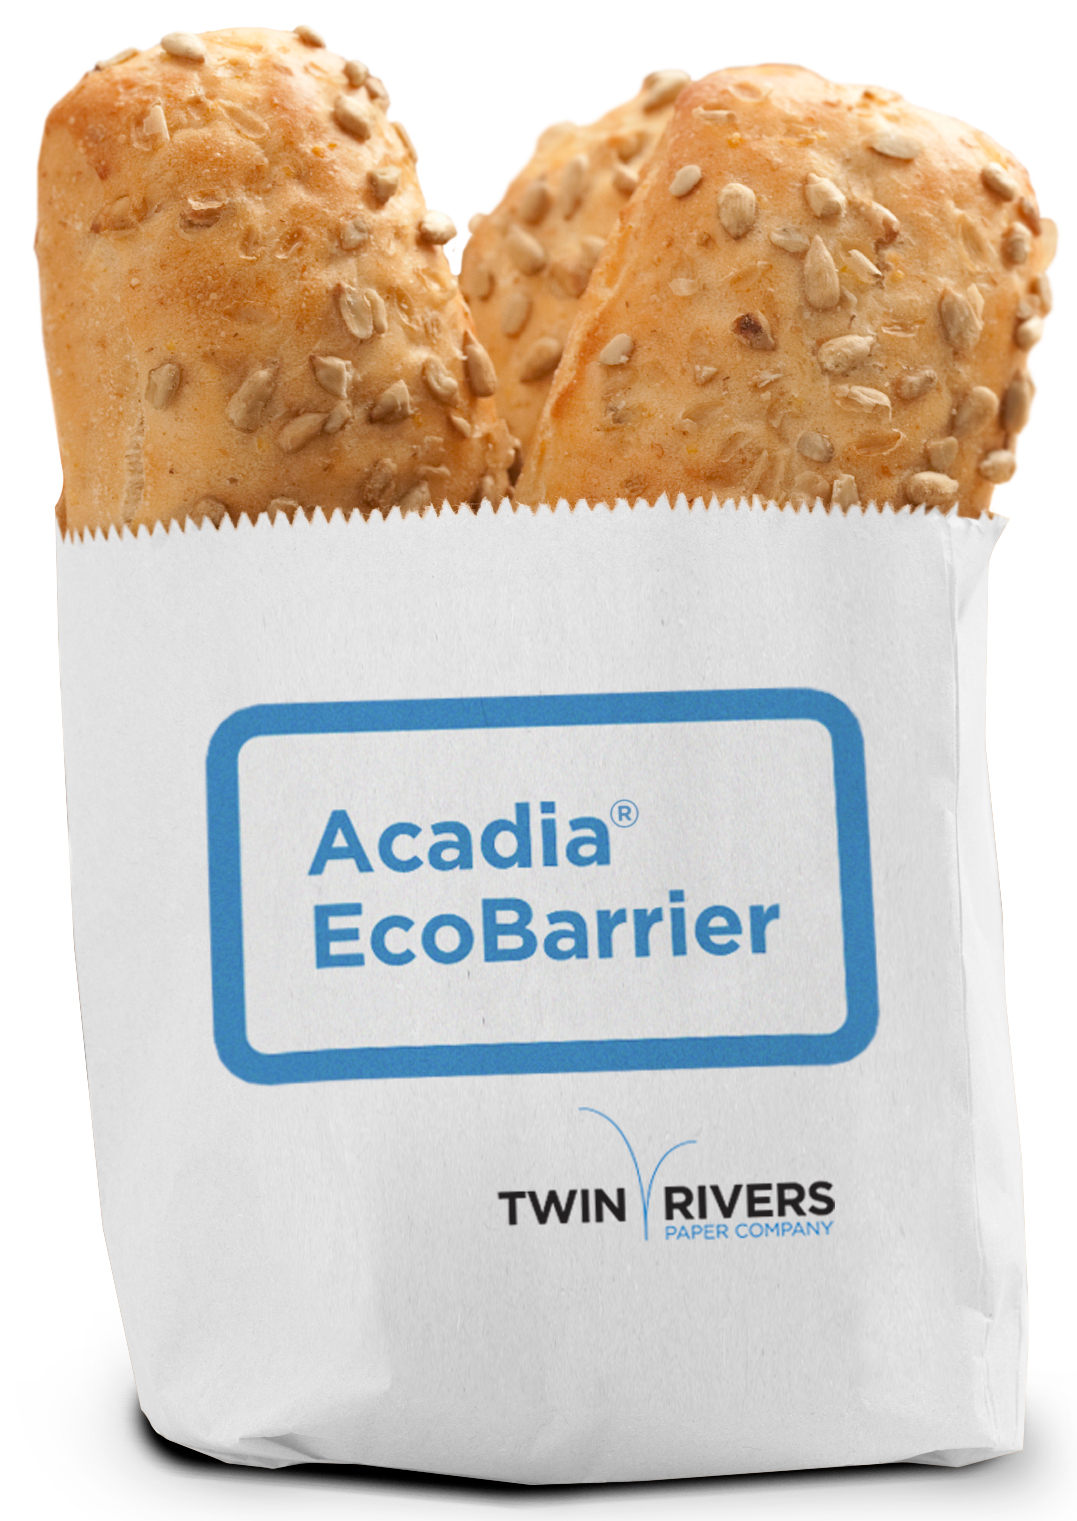 Acadia Ecobarrier paper wrapper